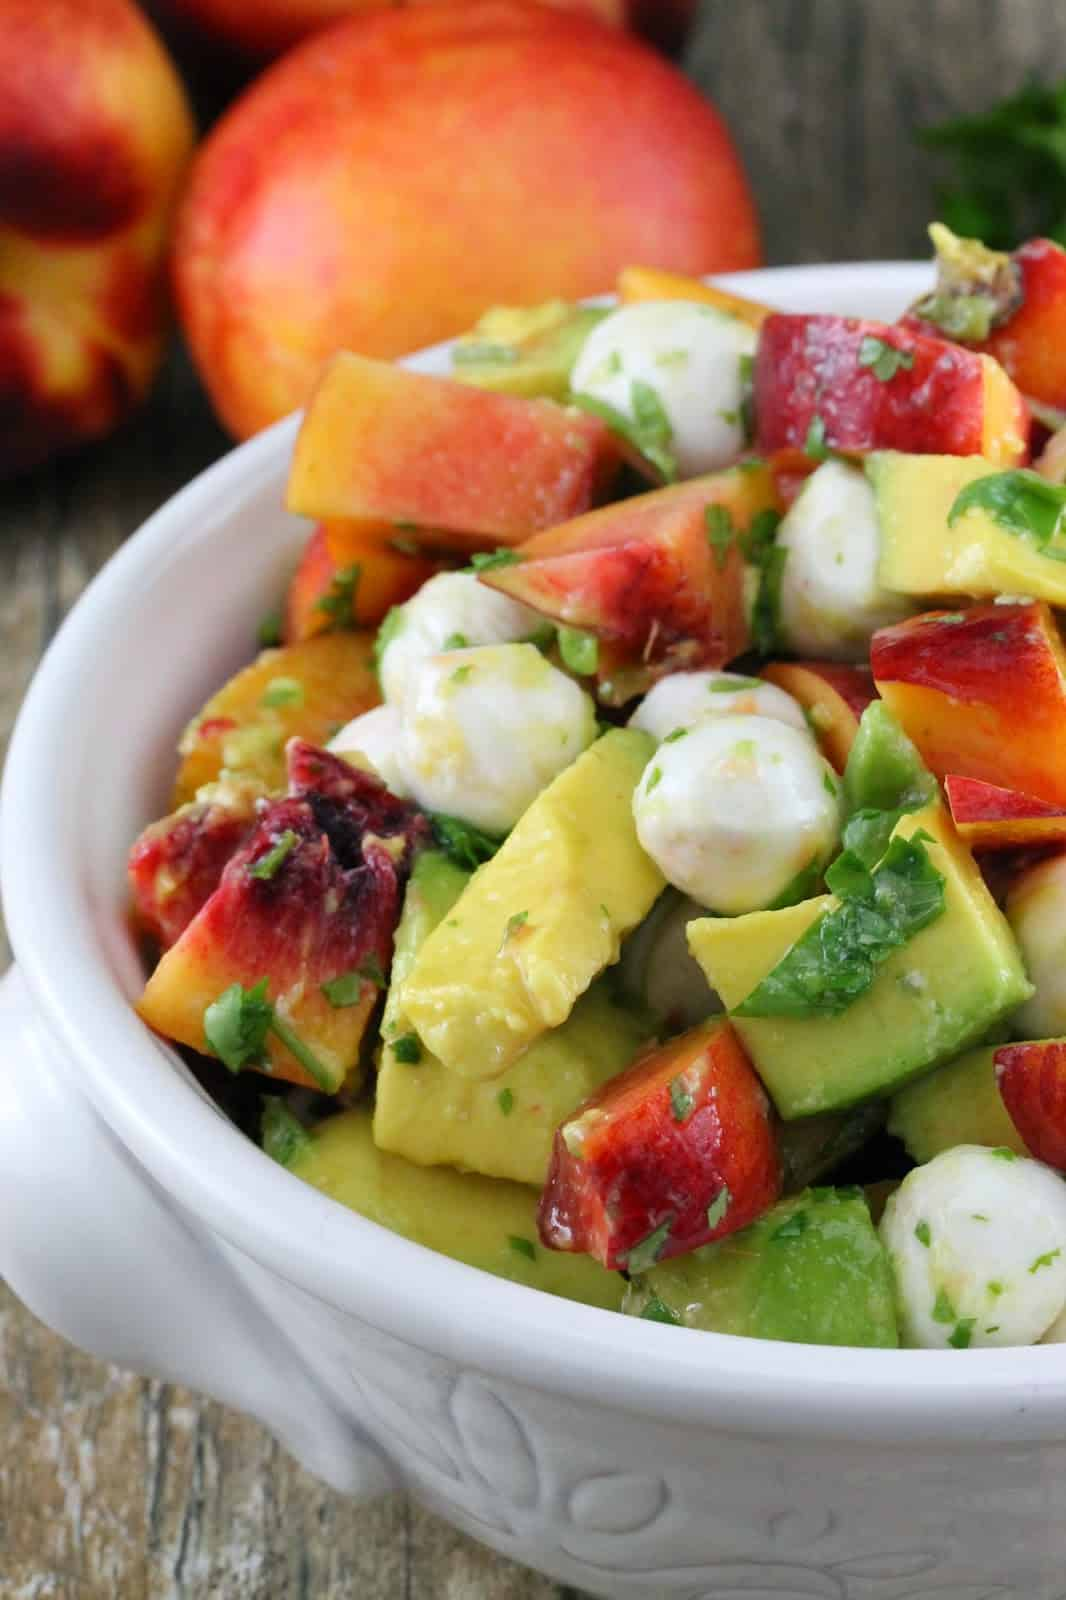 Close up of Nectarine and Avocado Fruit Salad in a white bowl